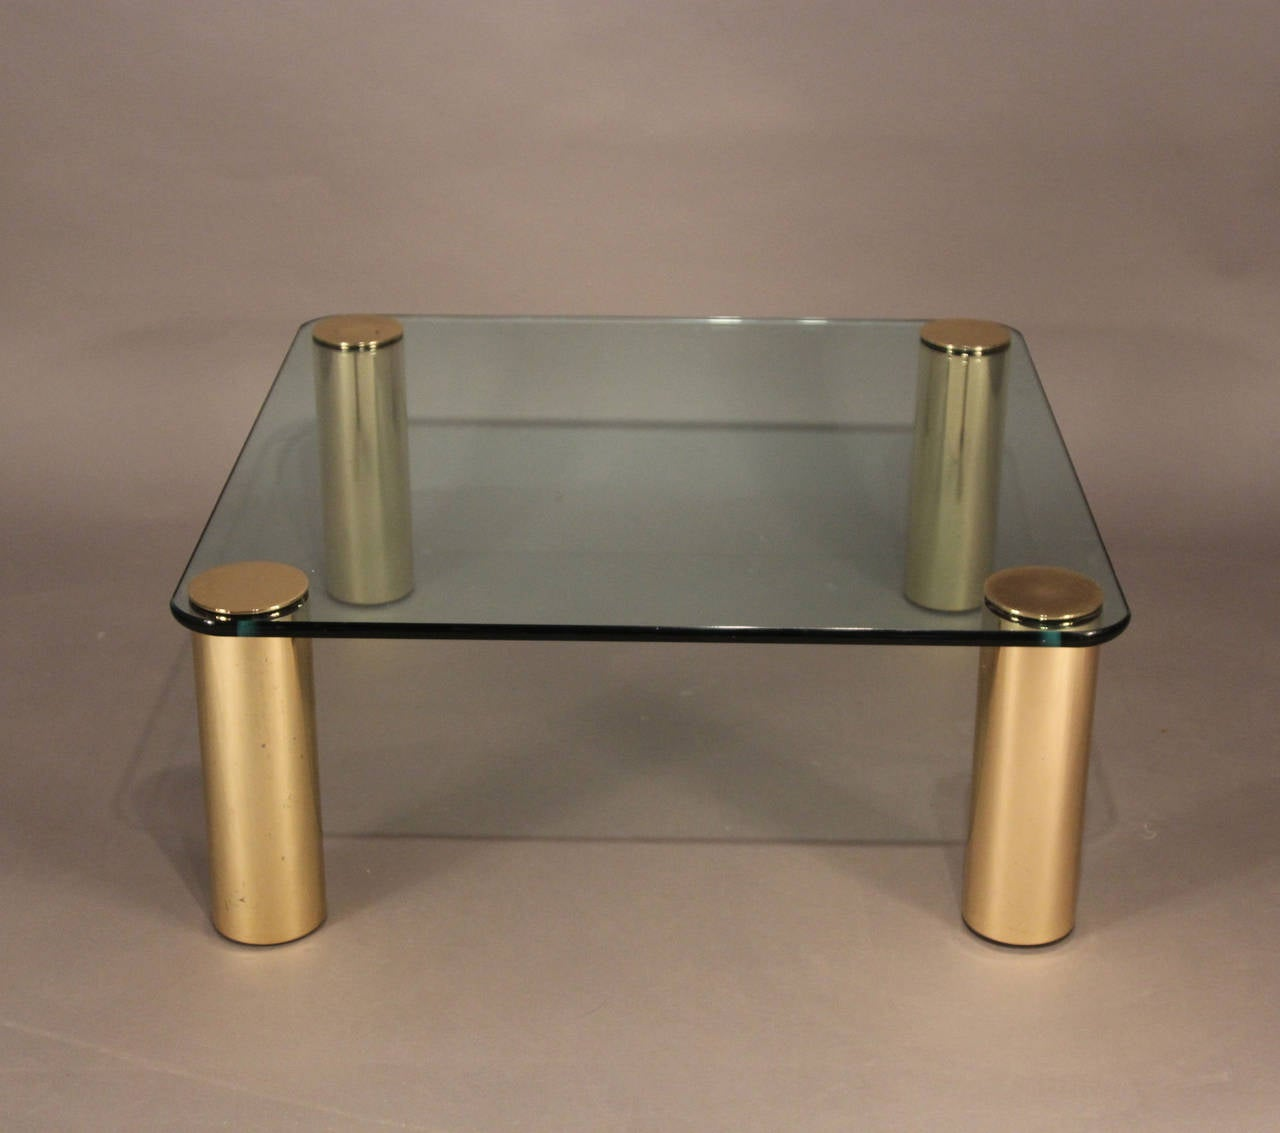 Coffee Table Legs Brass: Pace Coffee Table With Brass Legs And Glass Top At 1stdibs